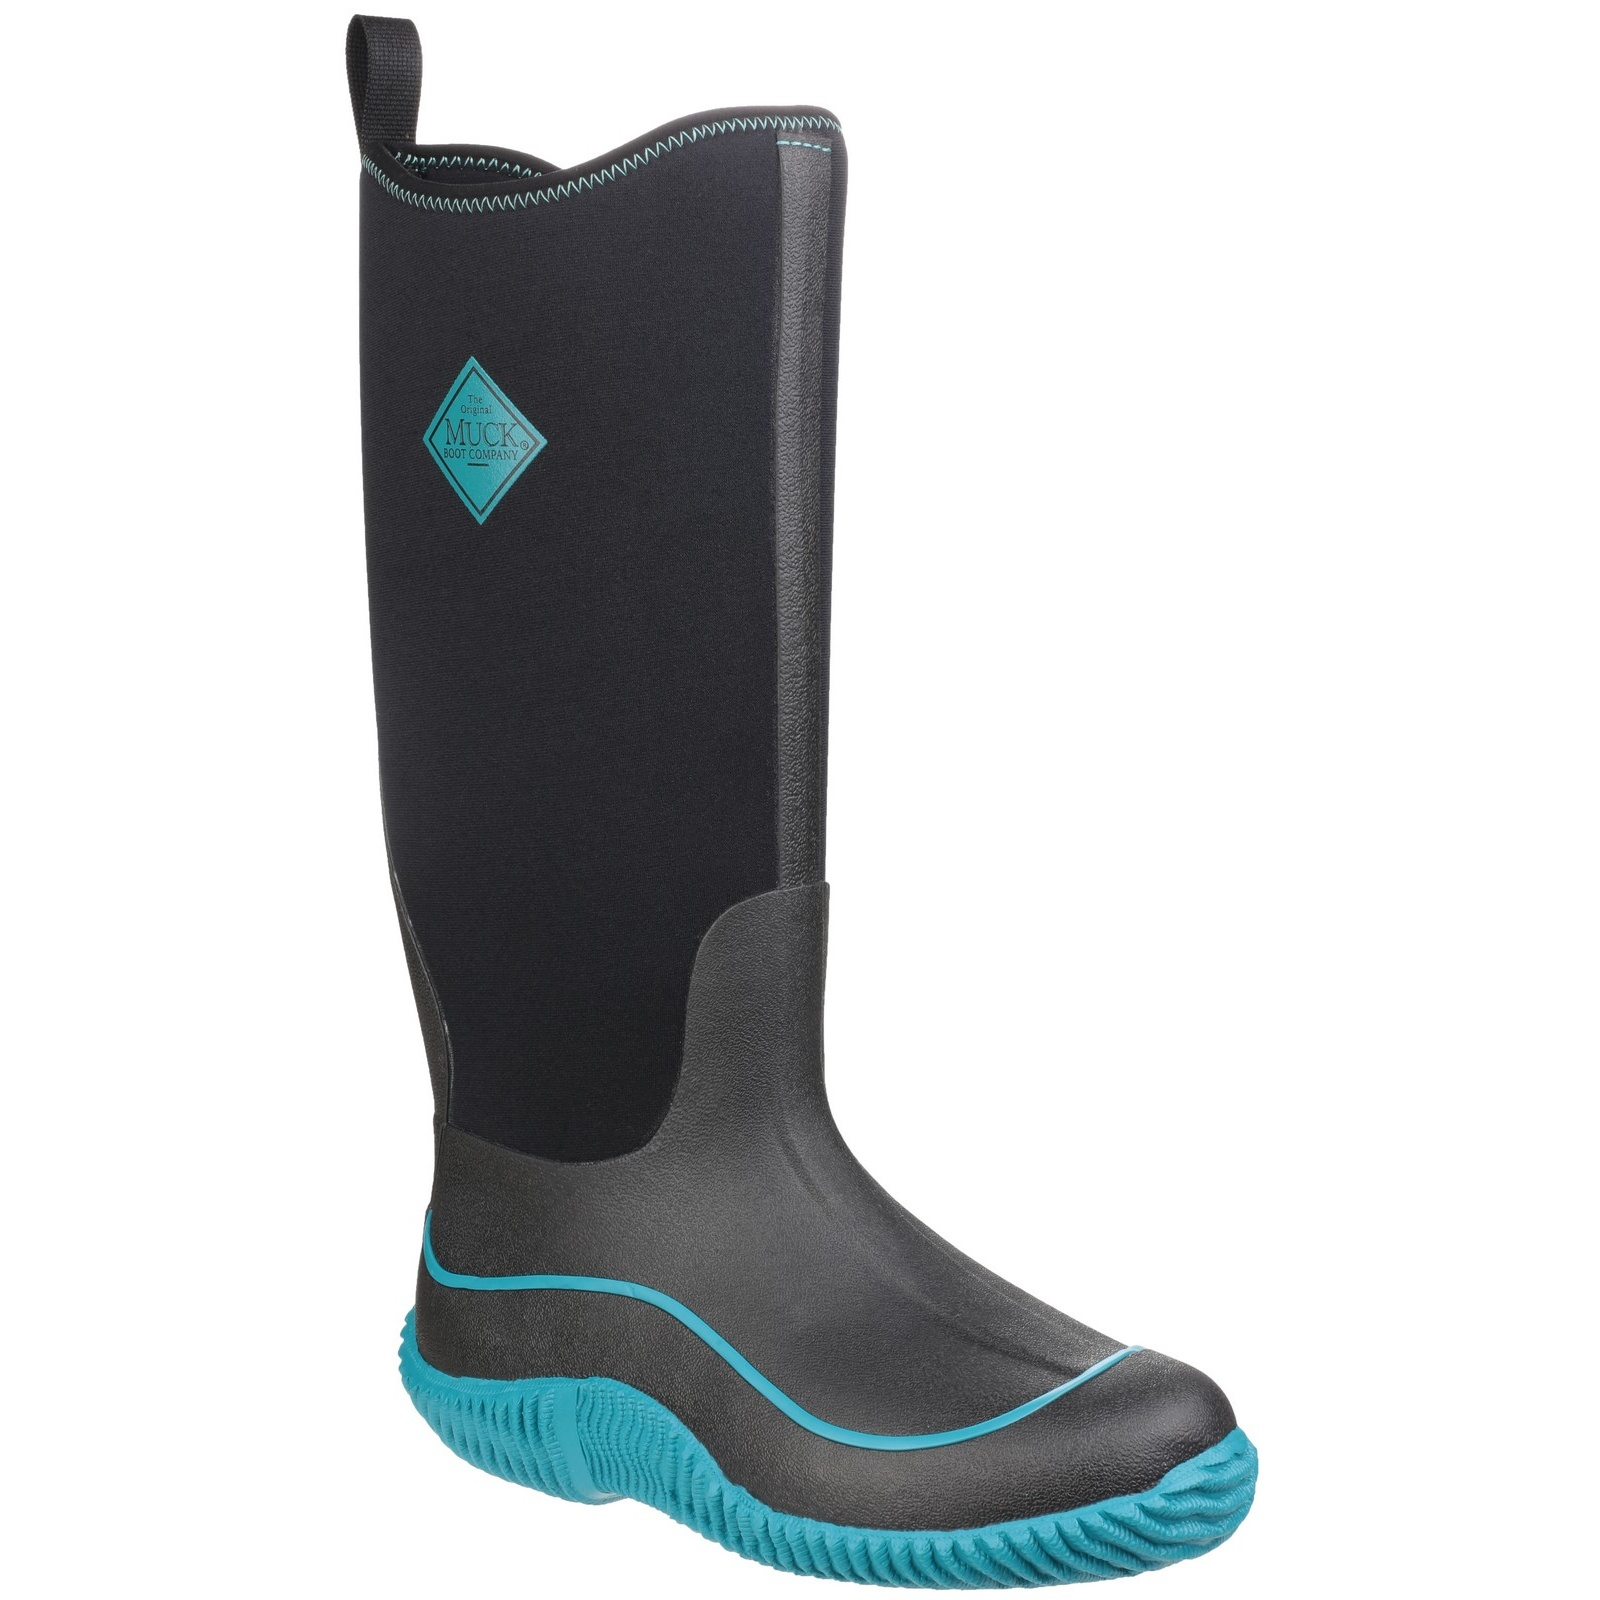 Muck Pull Boots Womens/Ladies Hale Pull Muck On Wellies (FS4301) d93f54